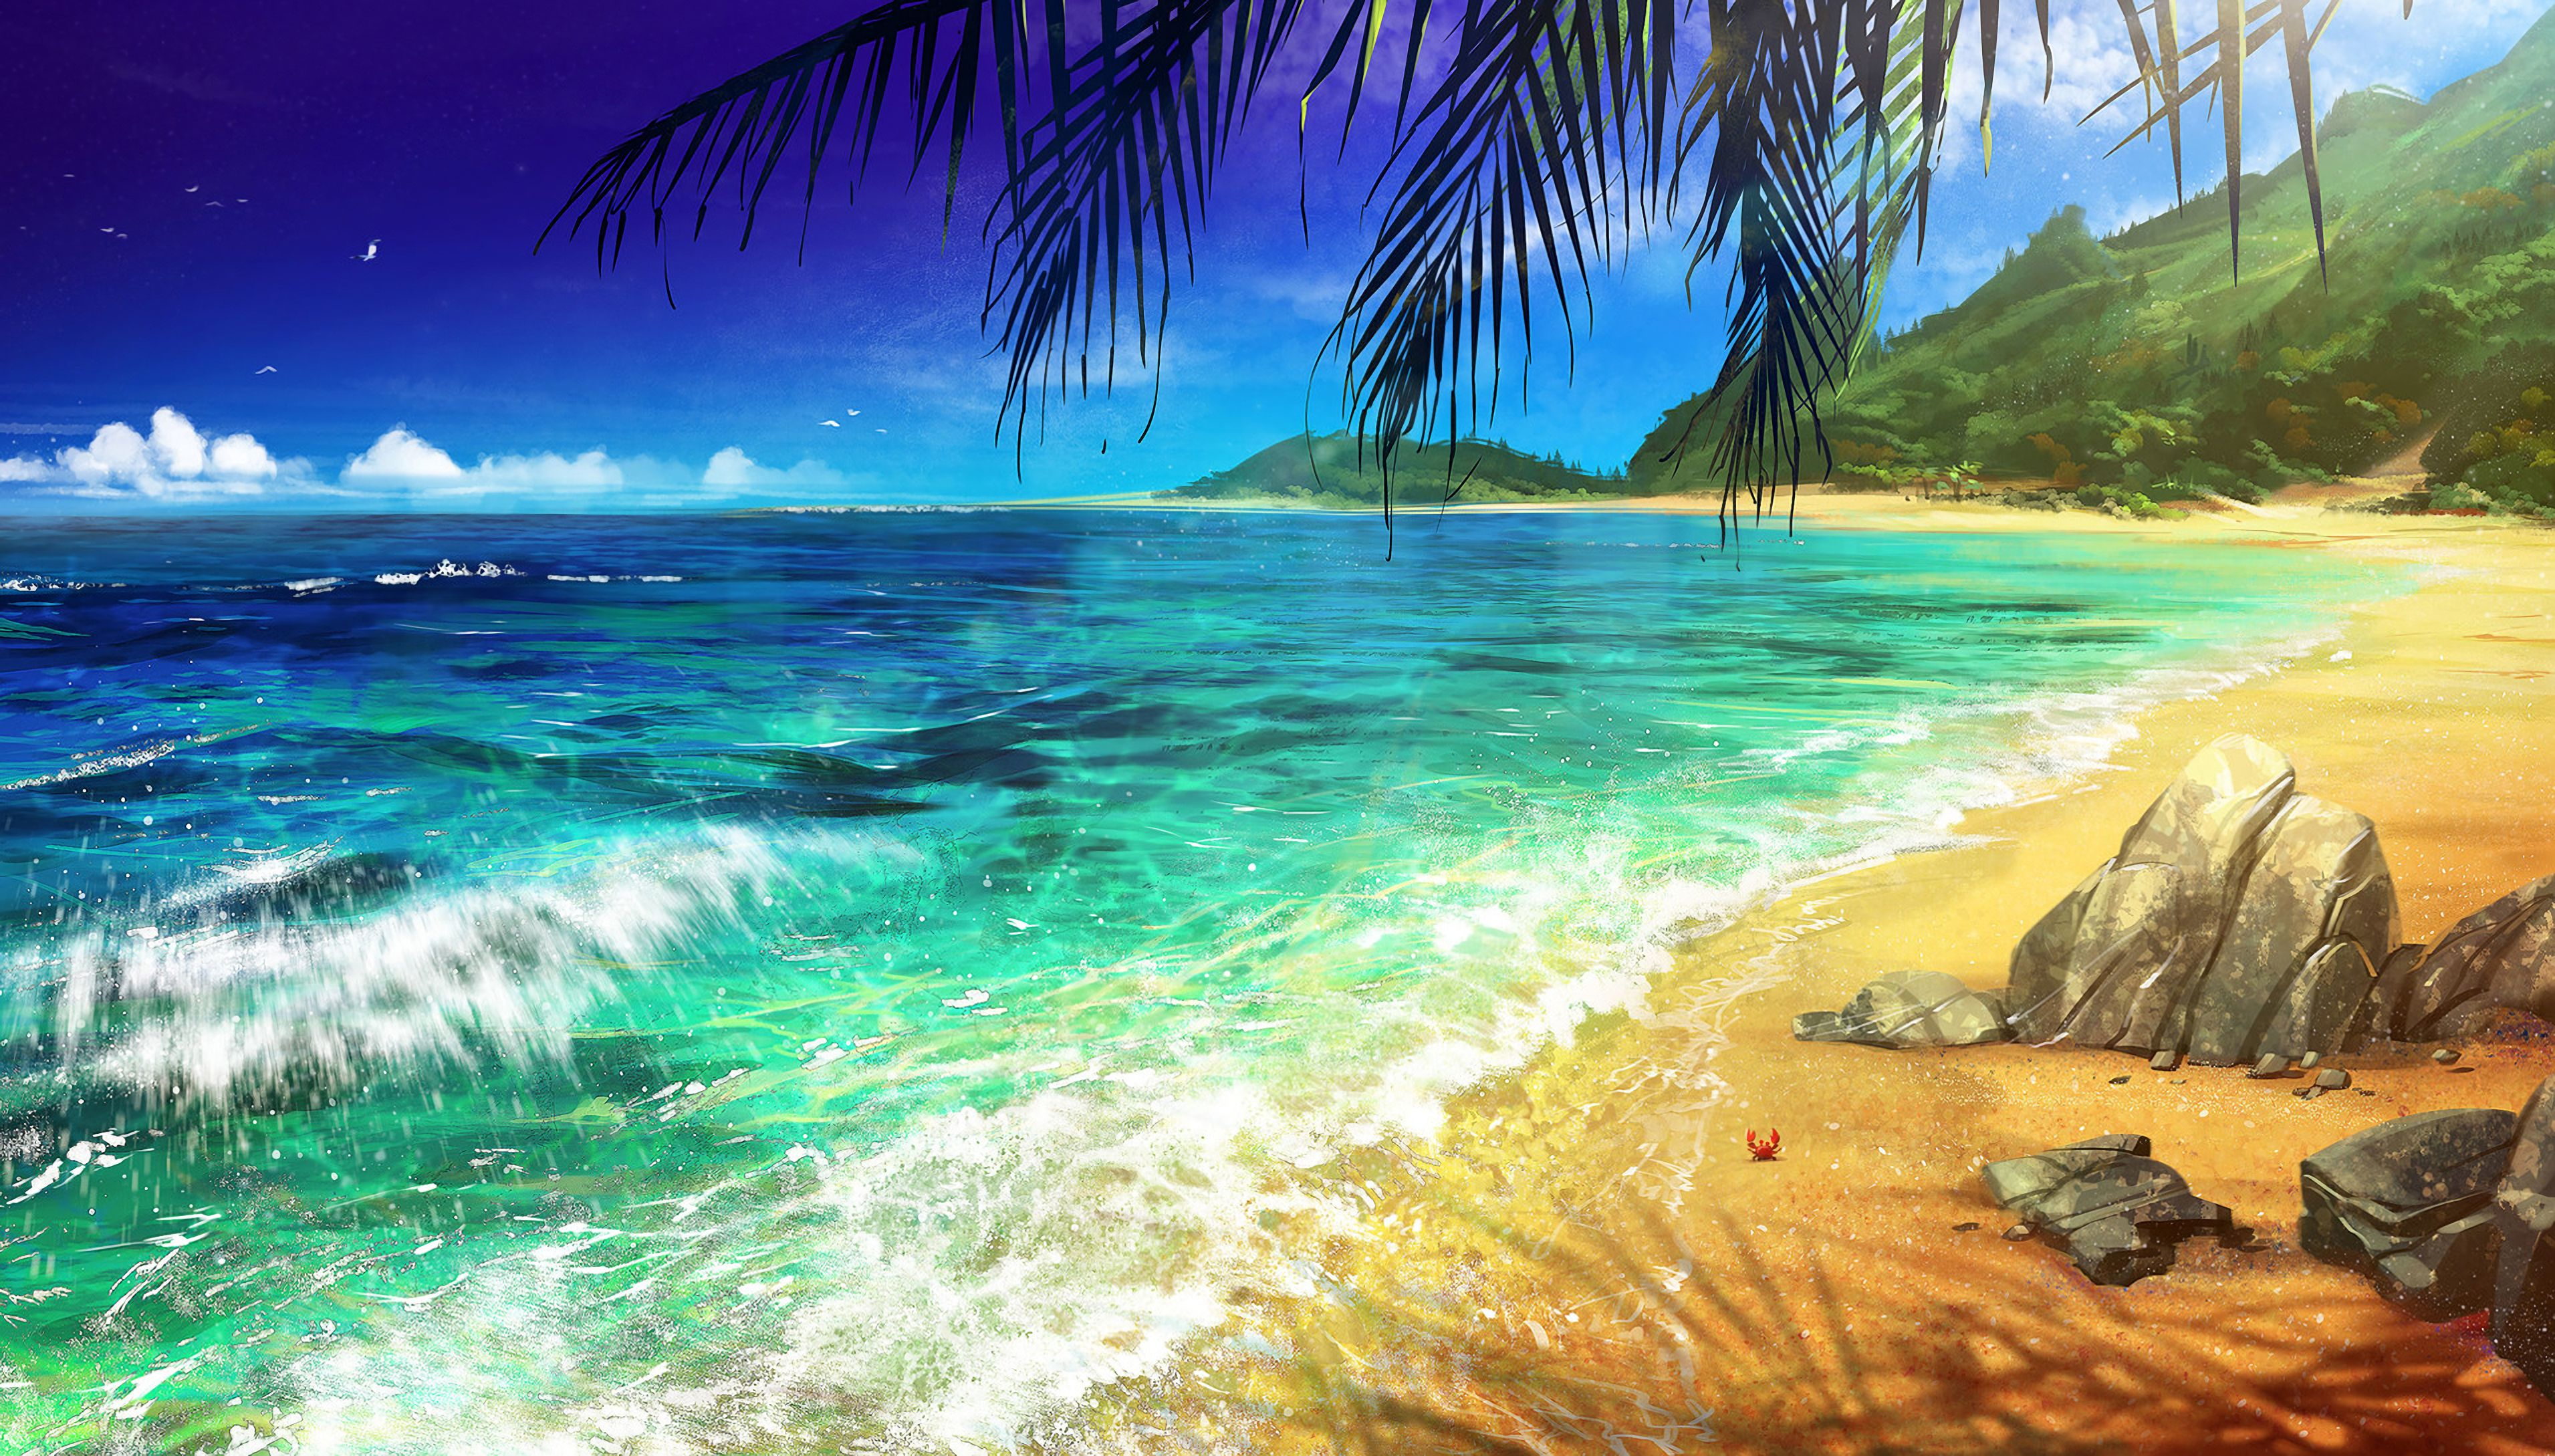 133729 download wallpaper Beach, Palm, Ocean, Art, Surf screensavers and pictures for free